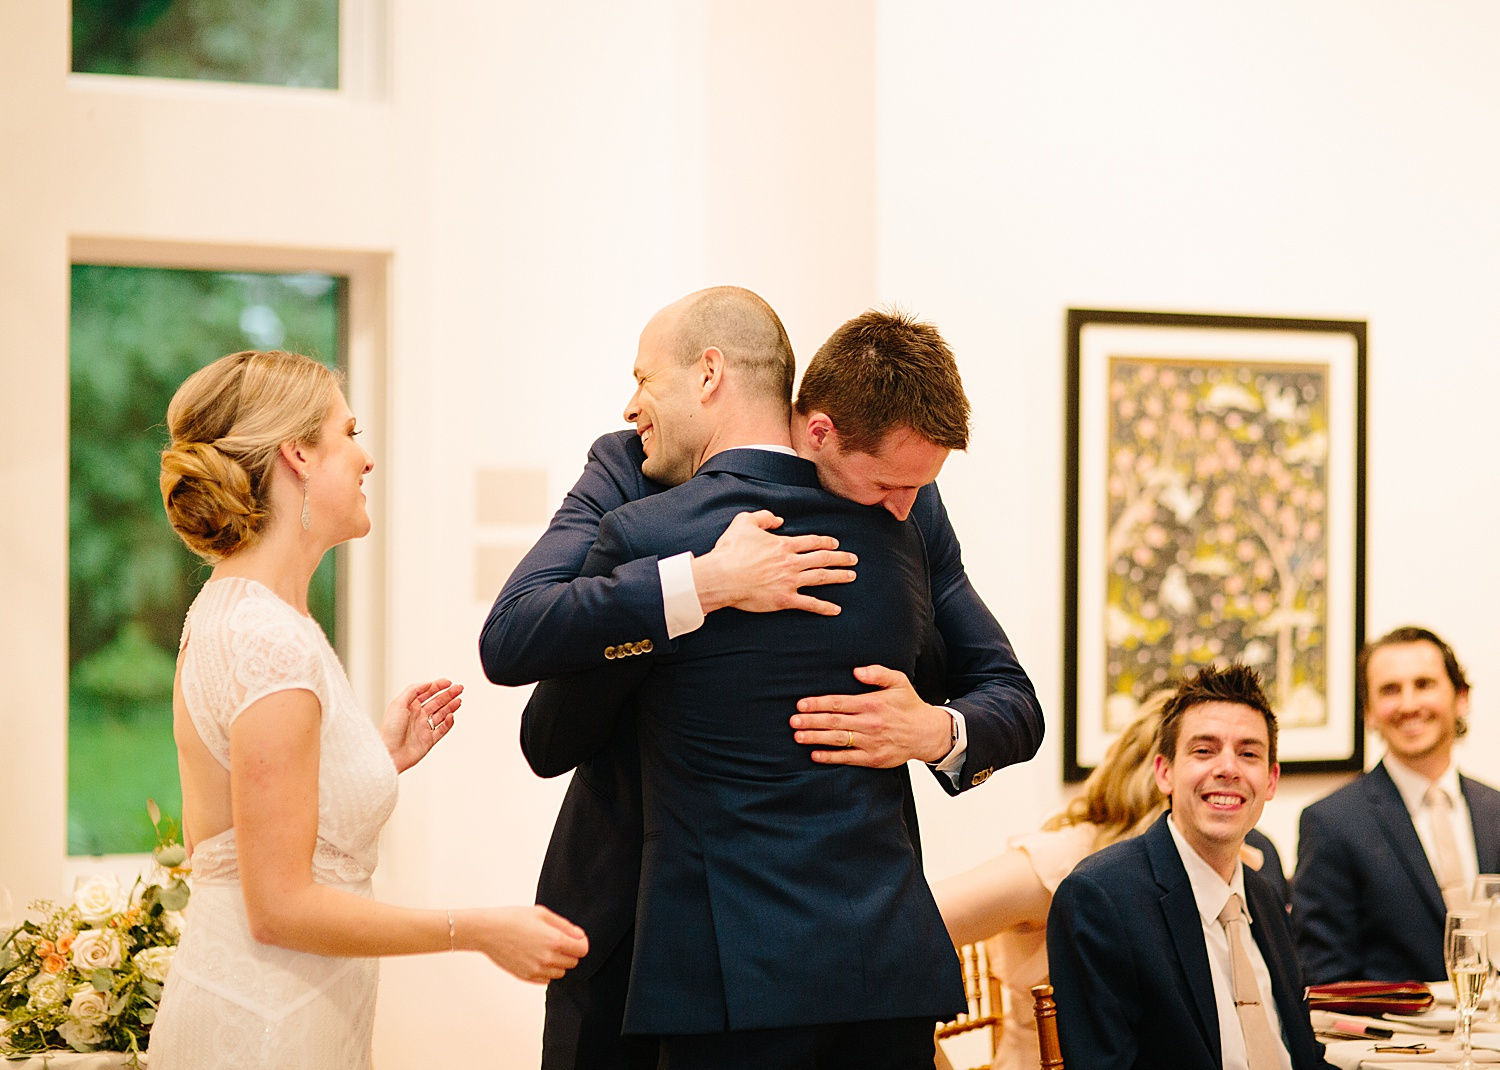 chelseachris_duke_art_gallery_wedding_image_085.jpg